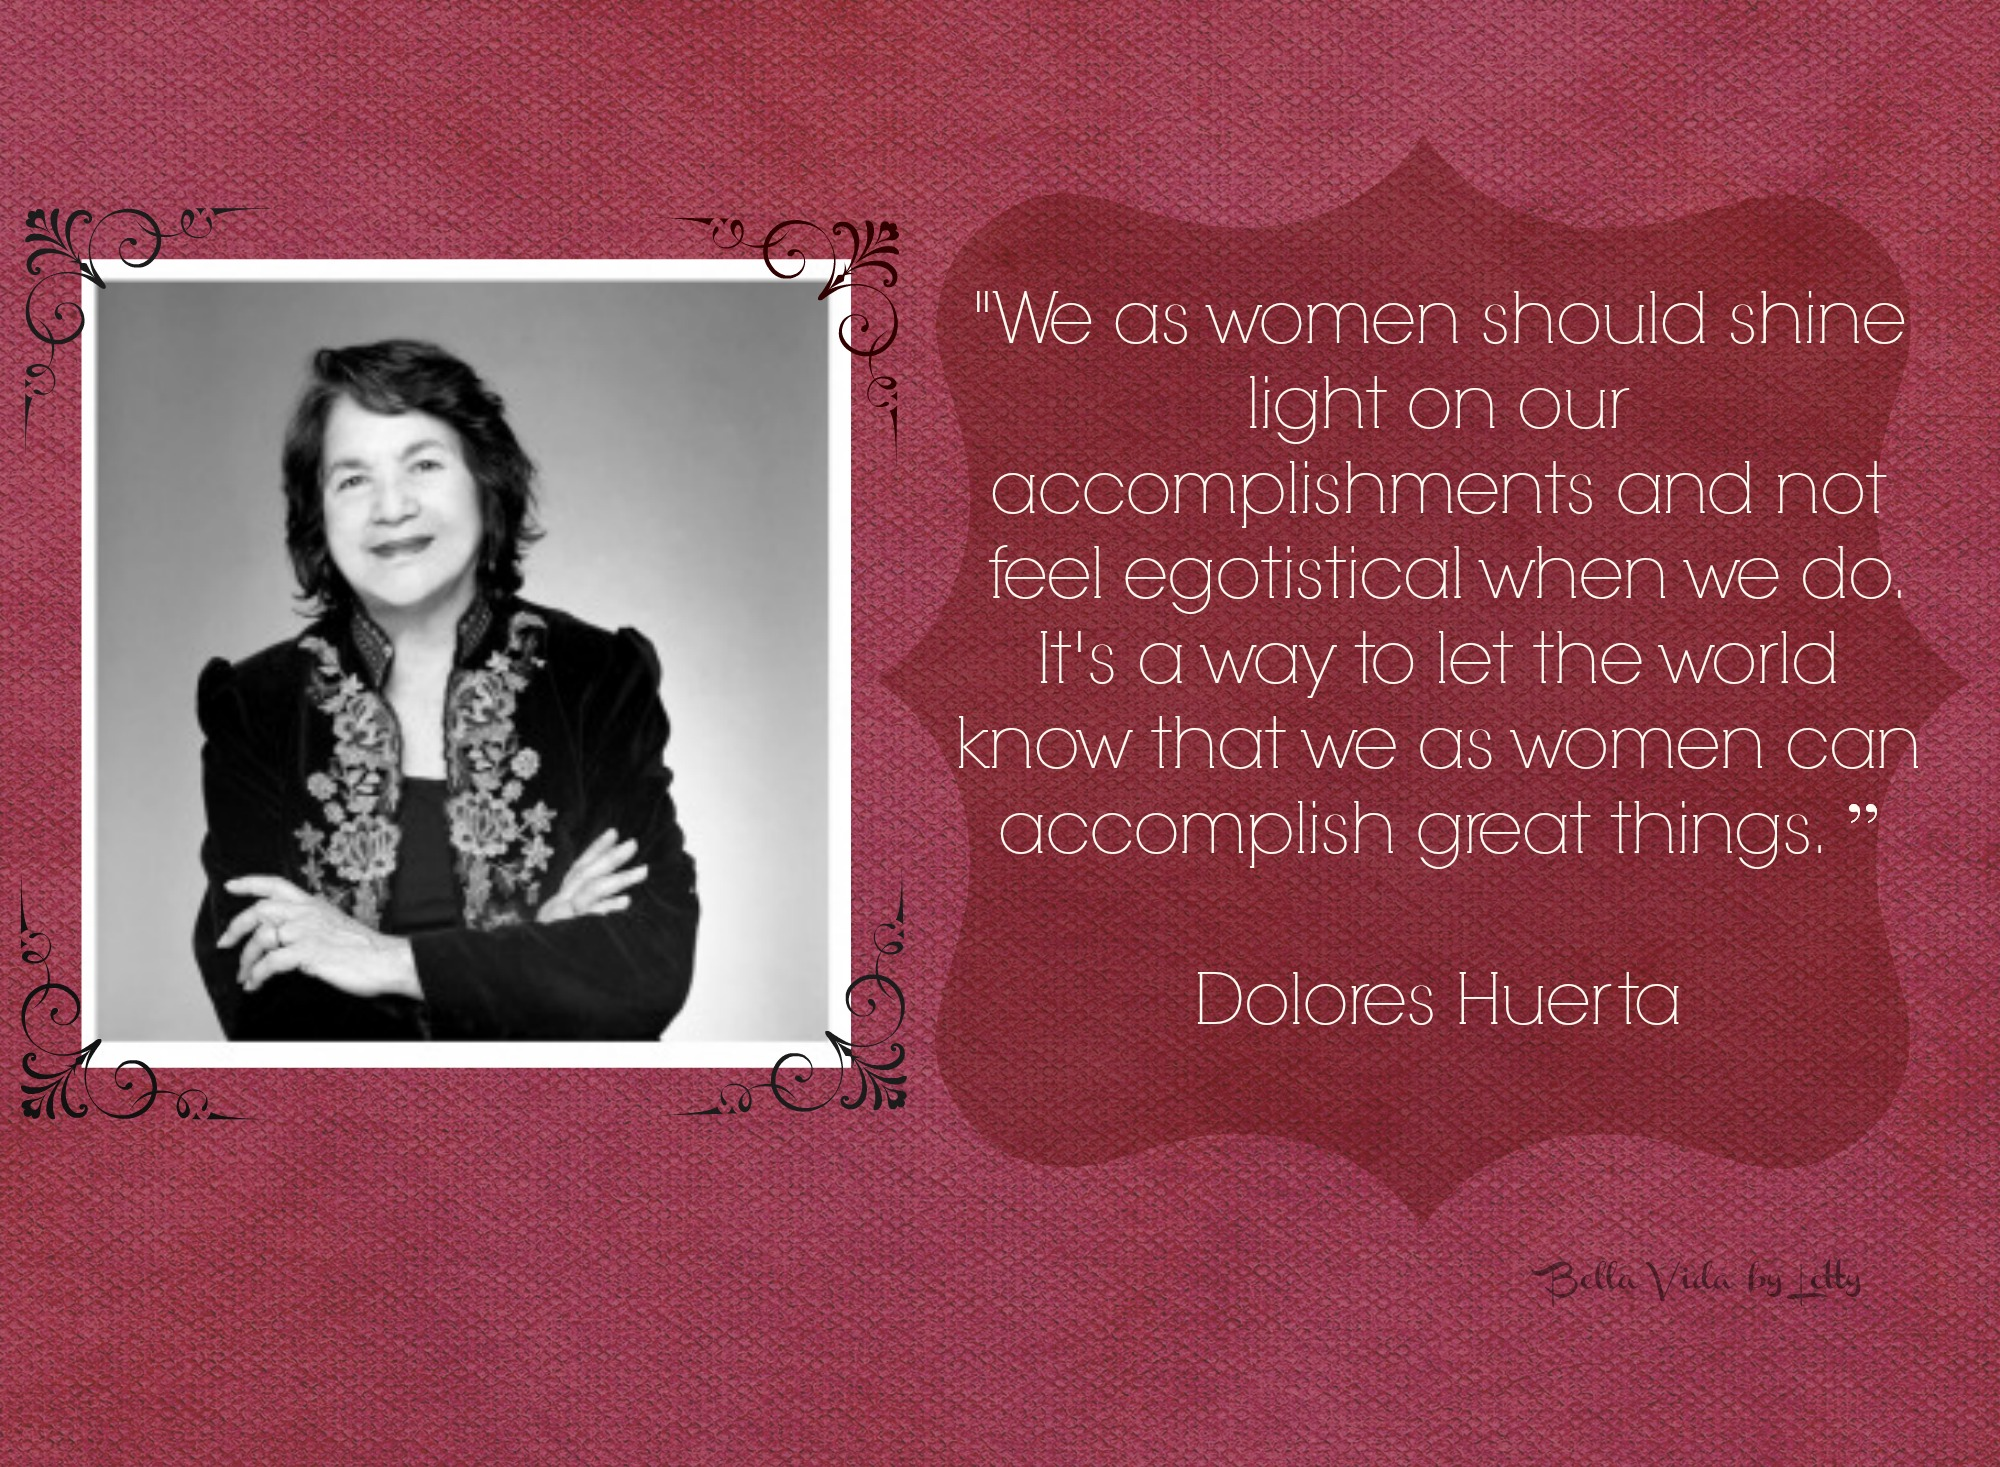 dolores huerta quotes